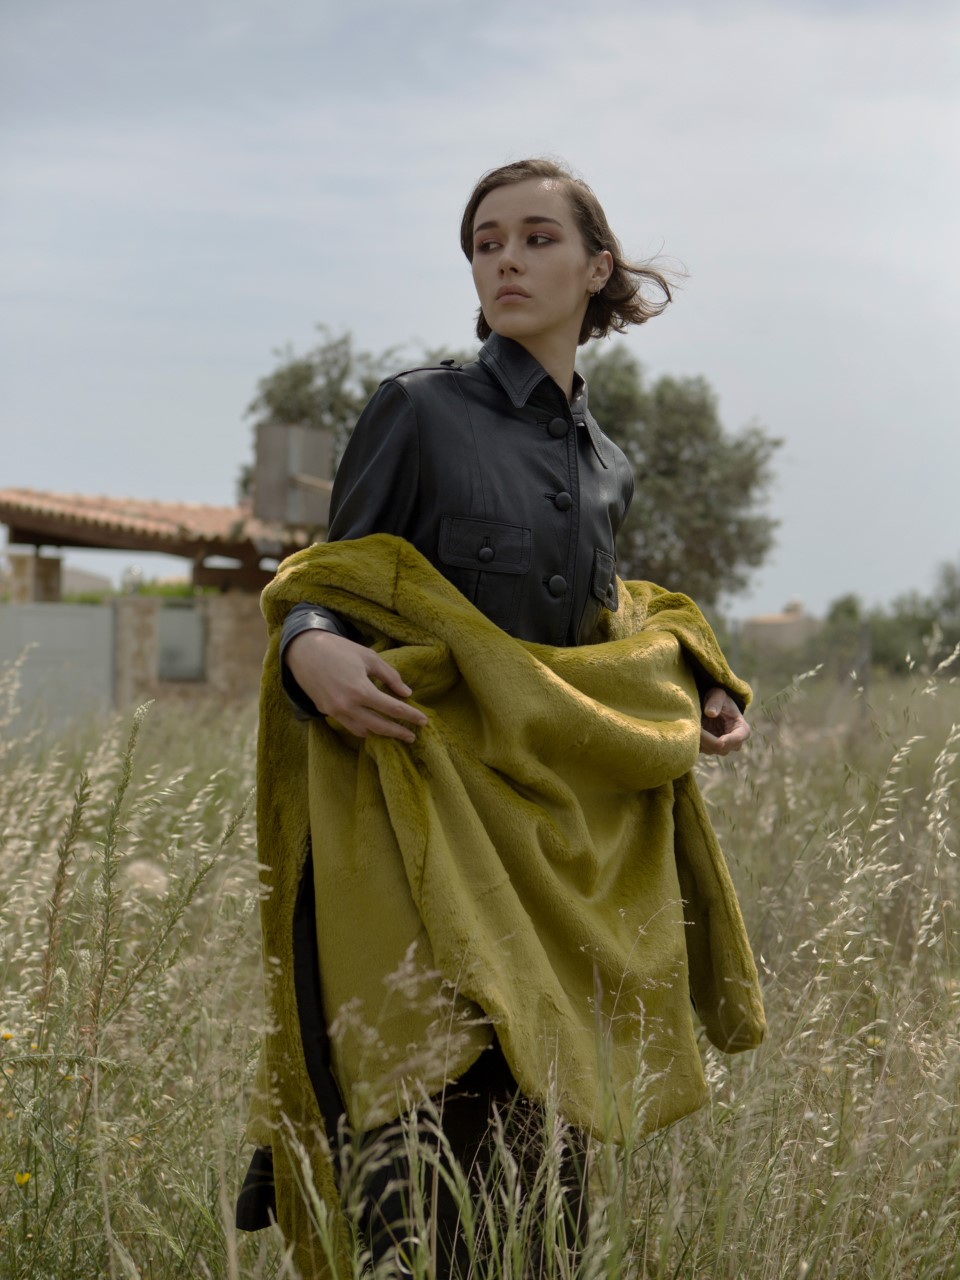 A model standing in a field wearing a baggy garment staring away from the camera